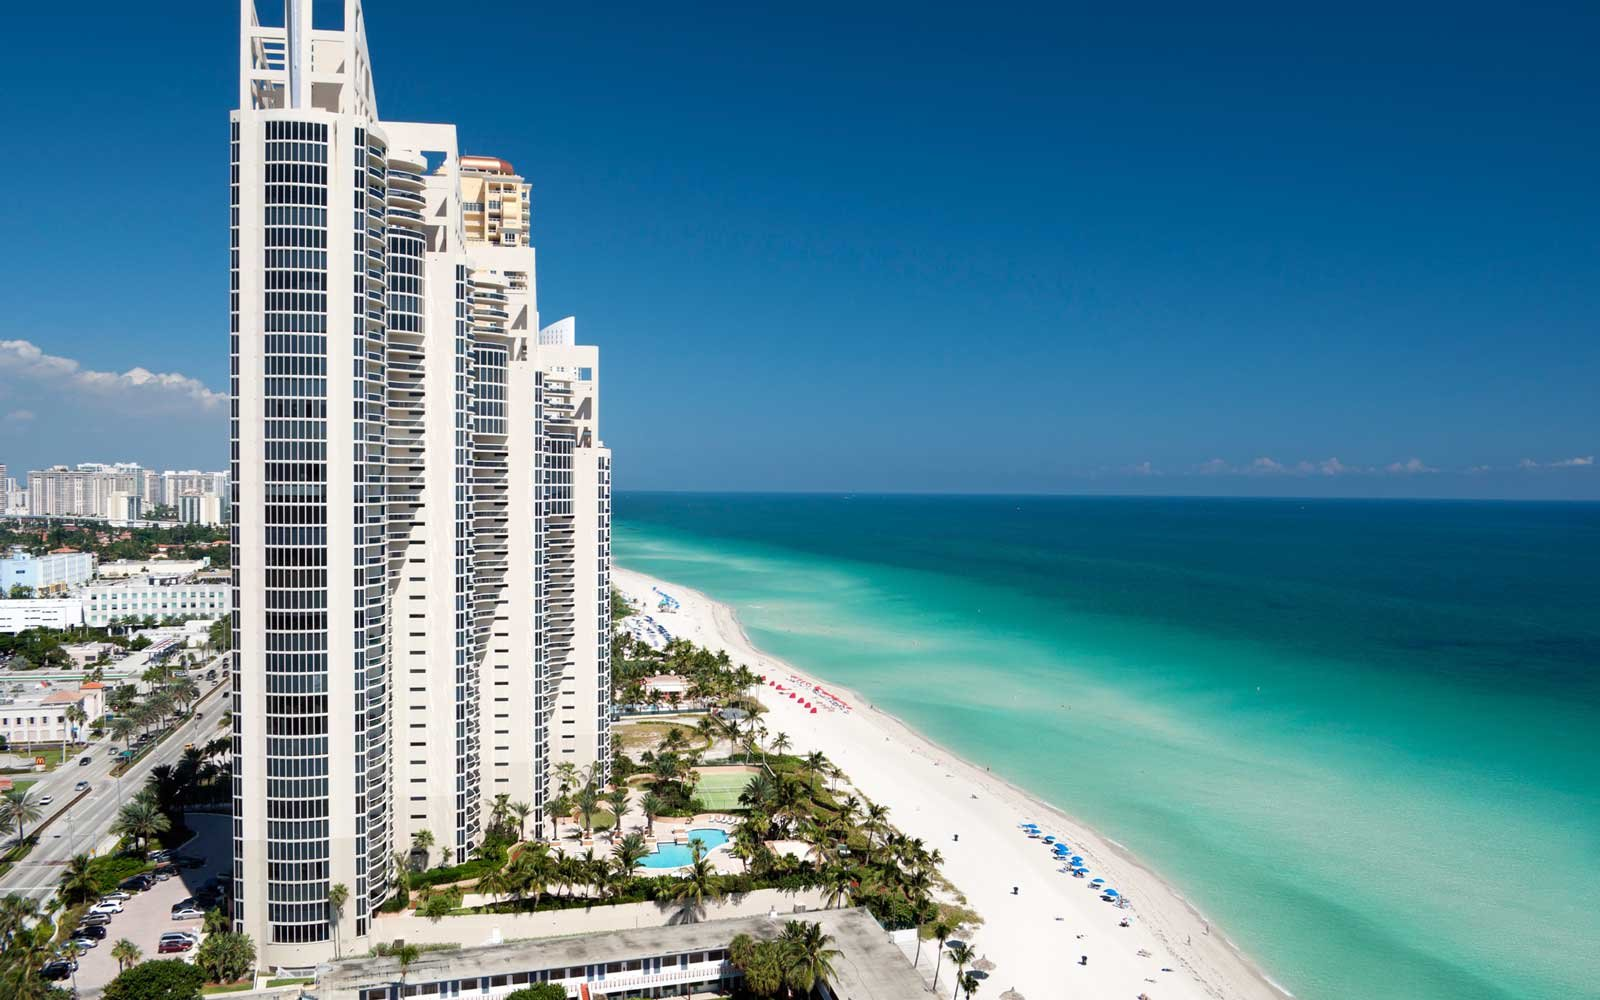 Aerial view of the skyline of Sunny Isles Beach, Miami, Florida